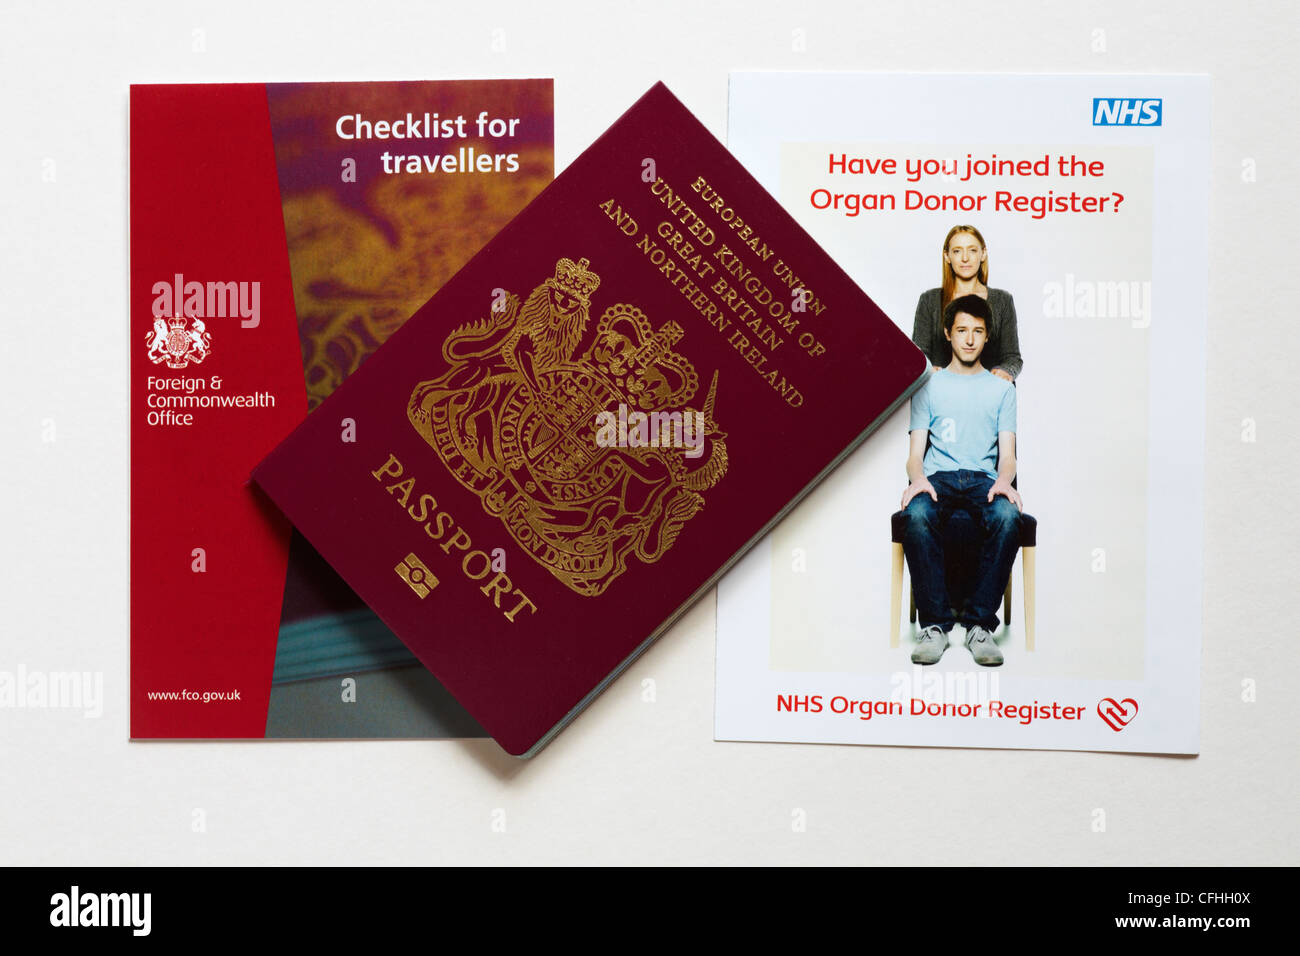 new passport received together with checklist for travellers and NHS leaflet Have you joined the Organ Donor Register - Stock Image